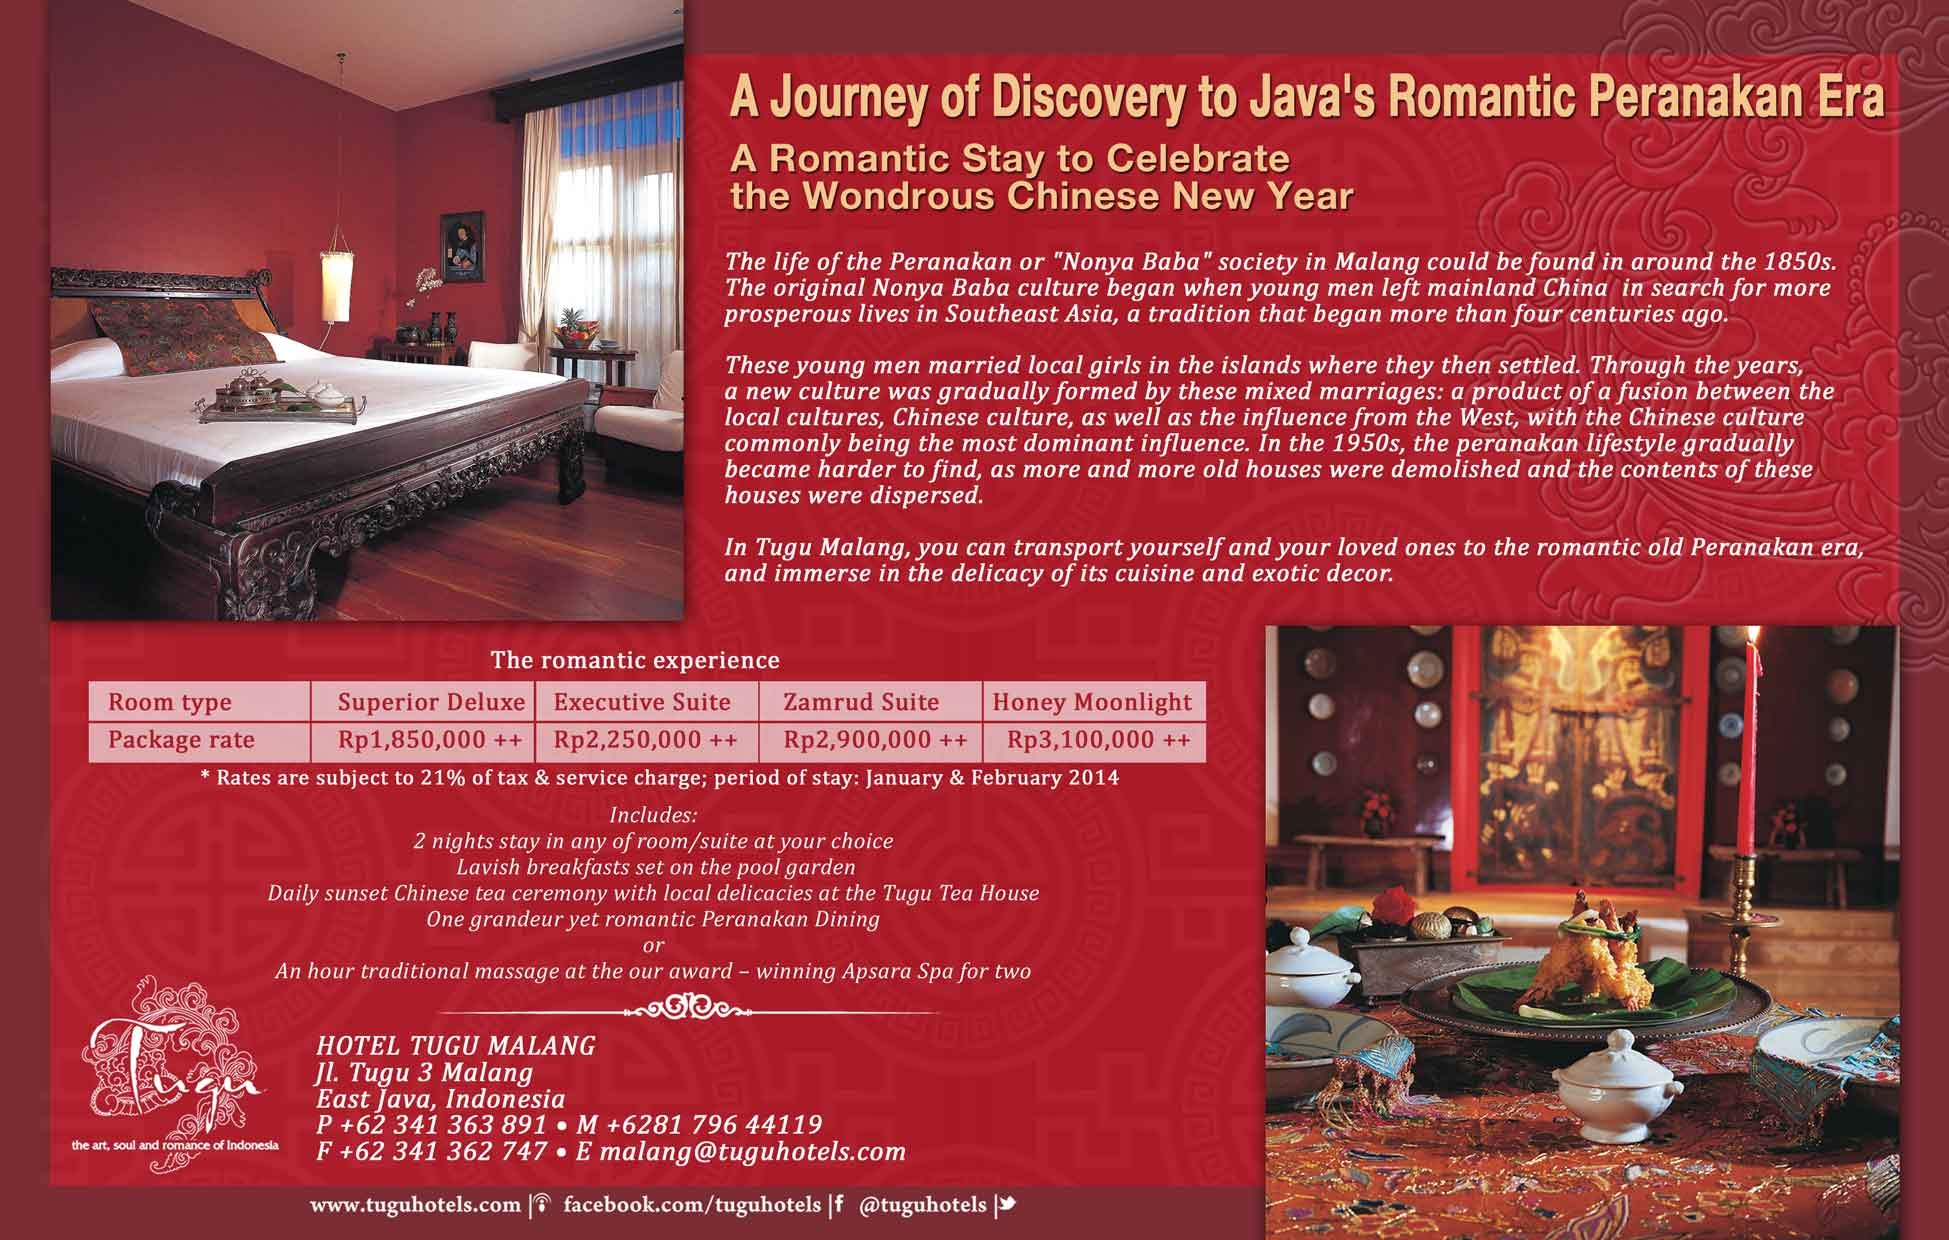 a journey of discovery to java's romantic peranakan era - a romantic stay to celebrate the wondrous chinese new year